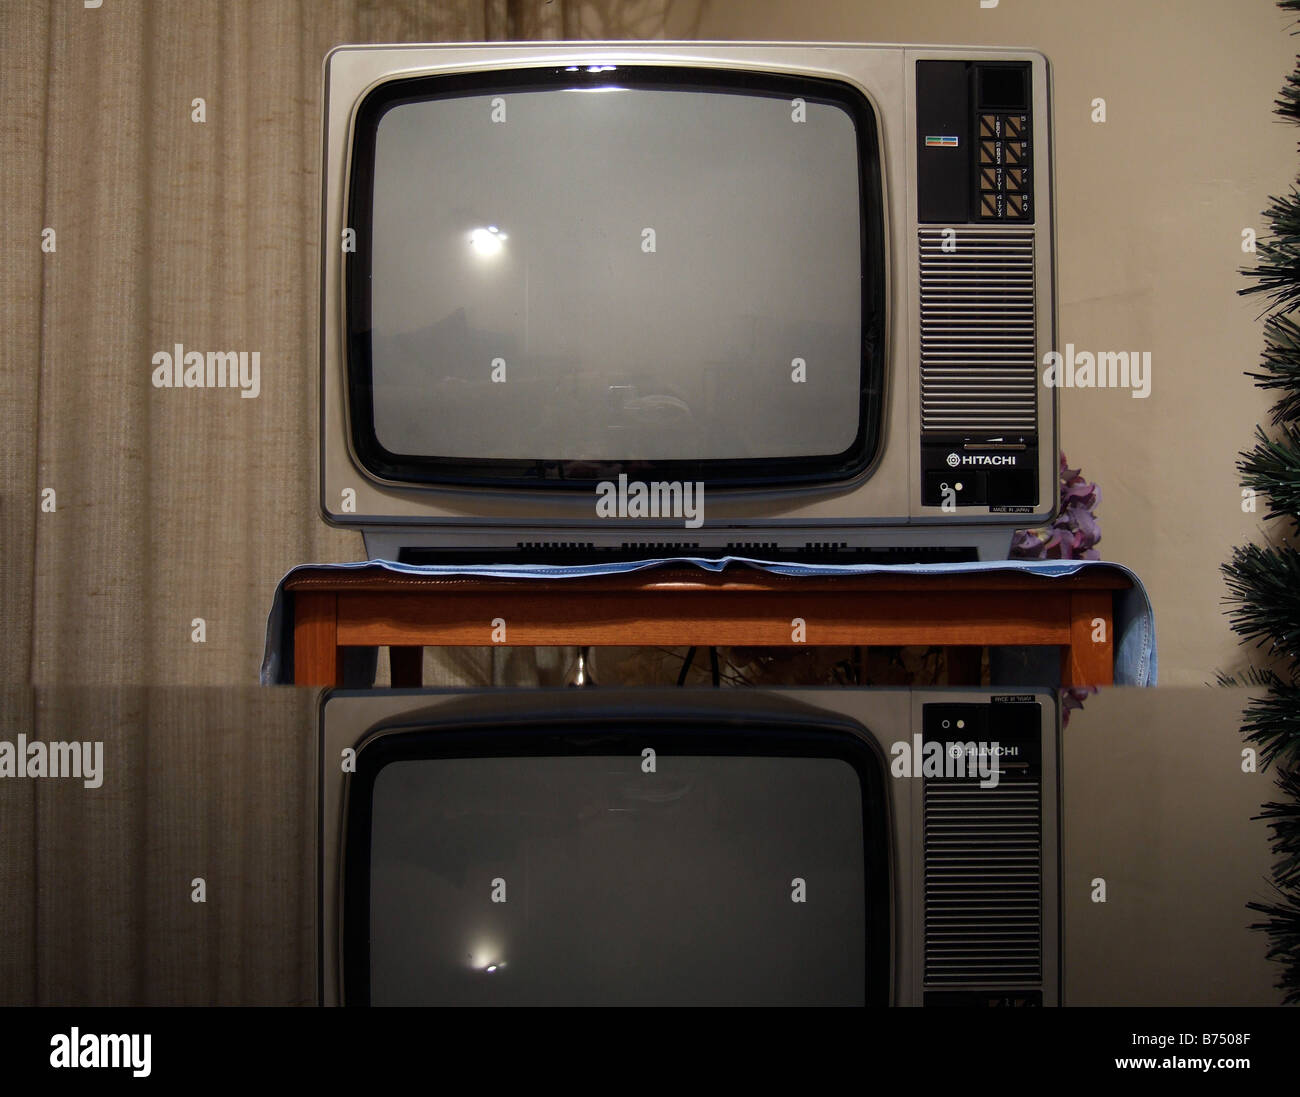 An old 1970's TV - Stock Image